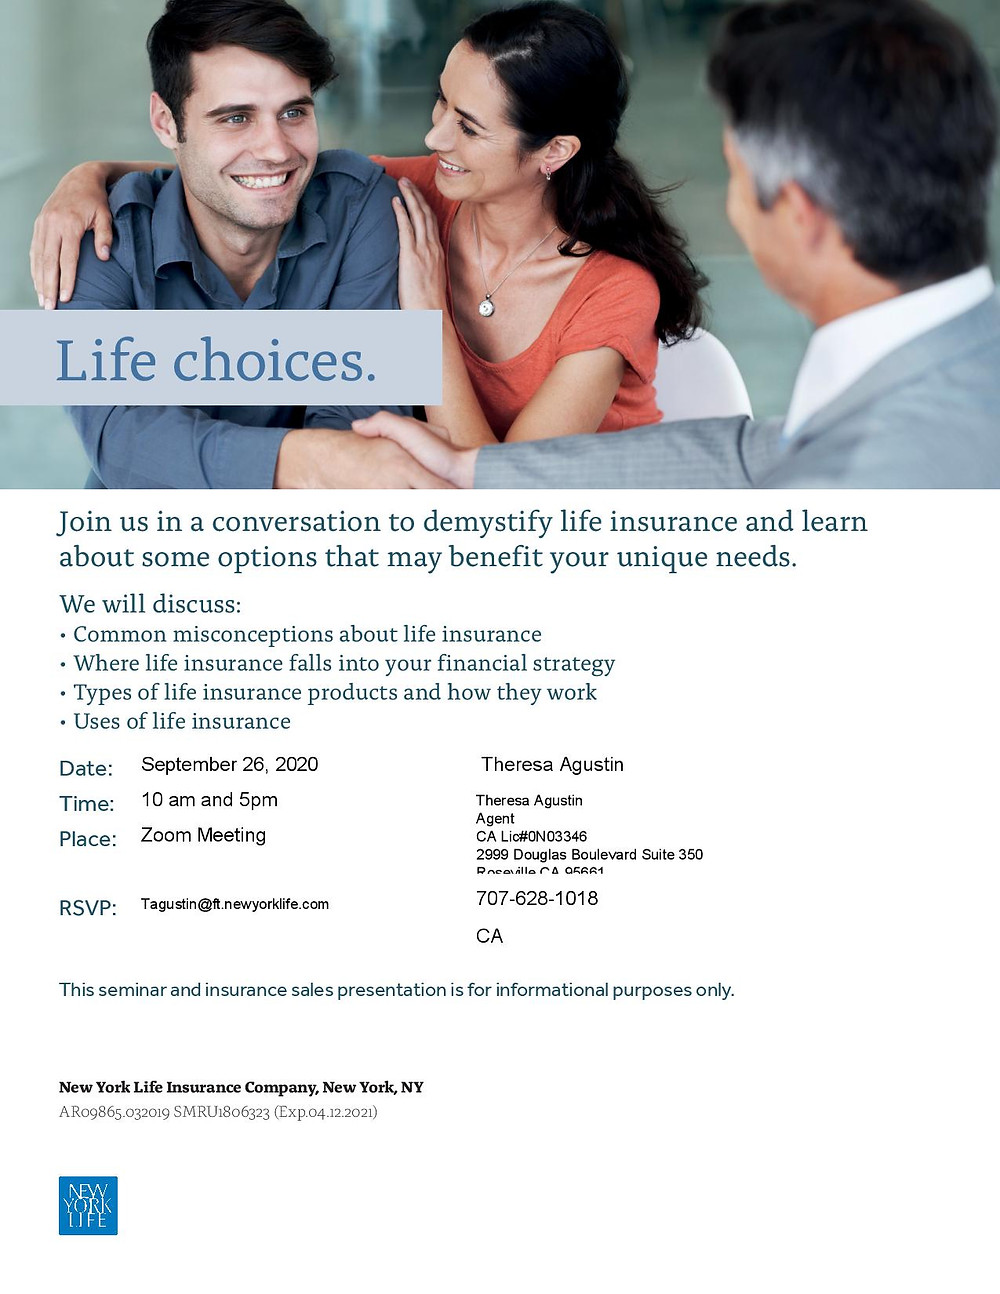 """[Flyer Description:  At the top banner a couple is smiling embracing each other while one person shakes hands with another person. It reads: """"Life choices.""""  On a white background in teal letters reads: Join us in a conversation to demystify life insurance and learn about some options that may benefit your unique needs.  We will discuss: • Common misconceptions about life insurance • Where life insurance falls into your financial strategy • Types of life insurance products and how they work • Uses of life insurance  Date: September 26, 2020  Time:10 am and 5pm.                 Place:Zoom Meeting RSVP:Tagustin@ft.newyorklife.com   Theresa Agustin Theresa Agustin Agent CA Lic#0N03346 2999 Douglas Boulevard Suite 350 Roseville,CA 95661 Tagustin@ft.newyorklife.com 707-628-1018 CA  This seminar and insurance sales presentation is for informational purposes only  New York Life Insurance Company, New York, NY AR09865.032019 SMRU1806323 (Exp.04.12.2021)  at the bottom left corner shows the New York Life logo in blue with white letters.]"""